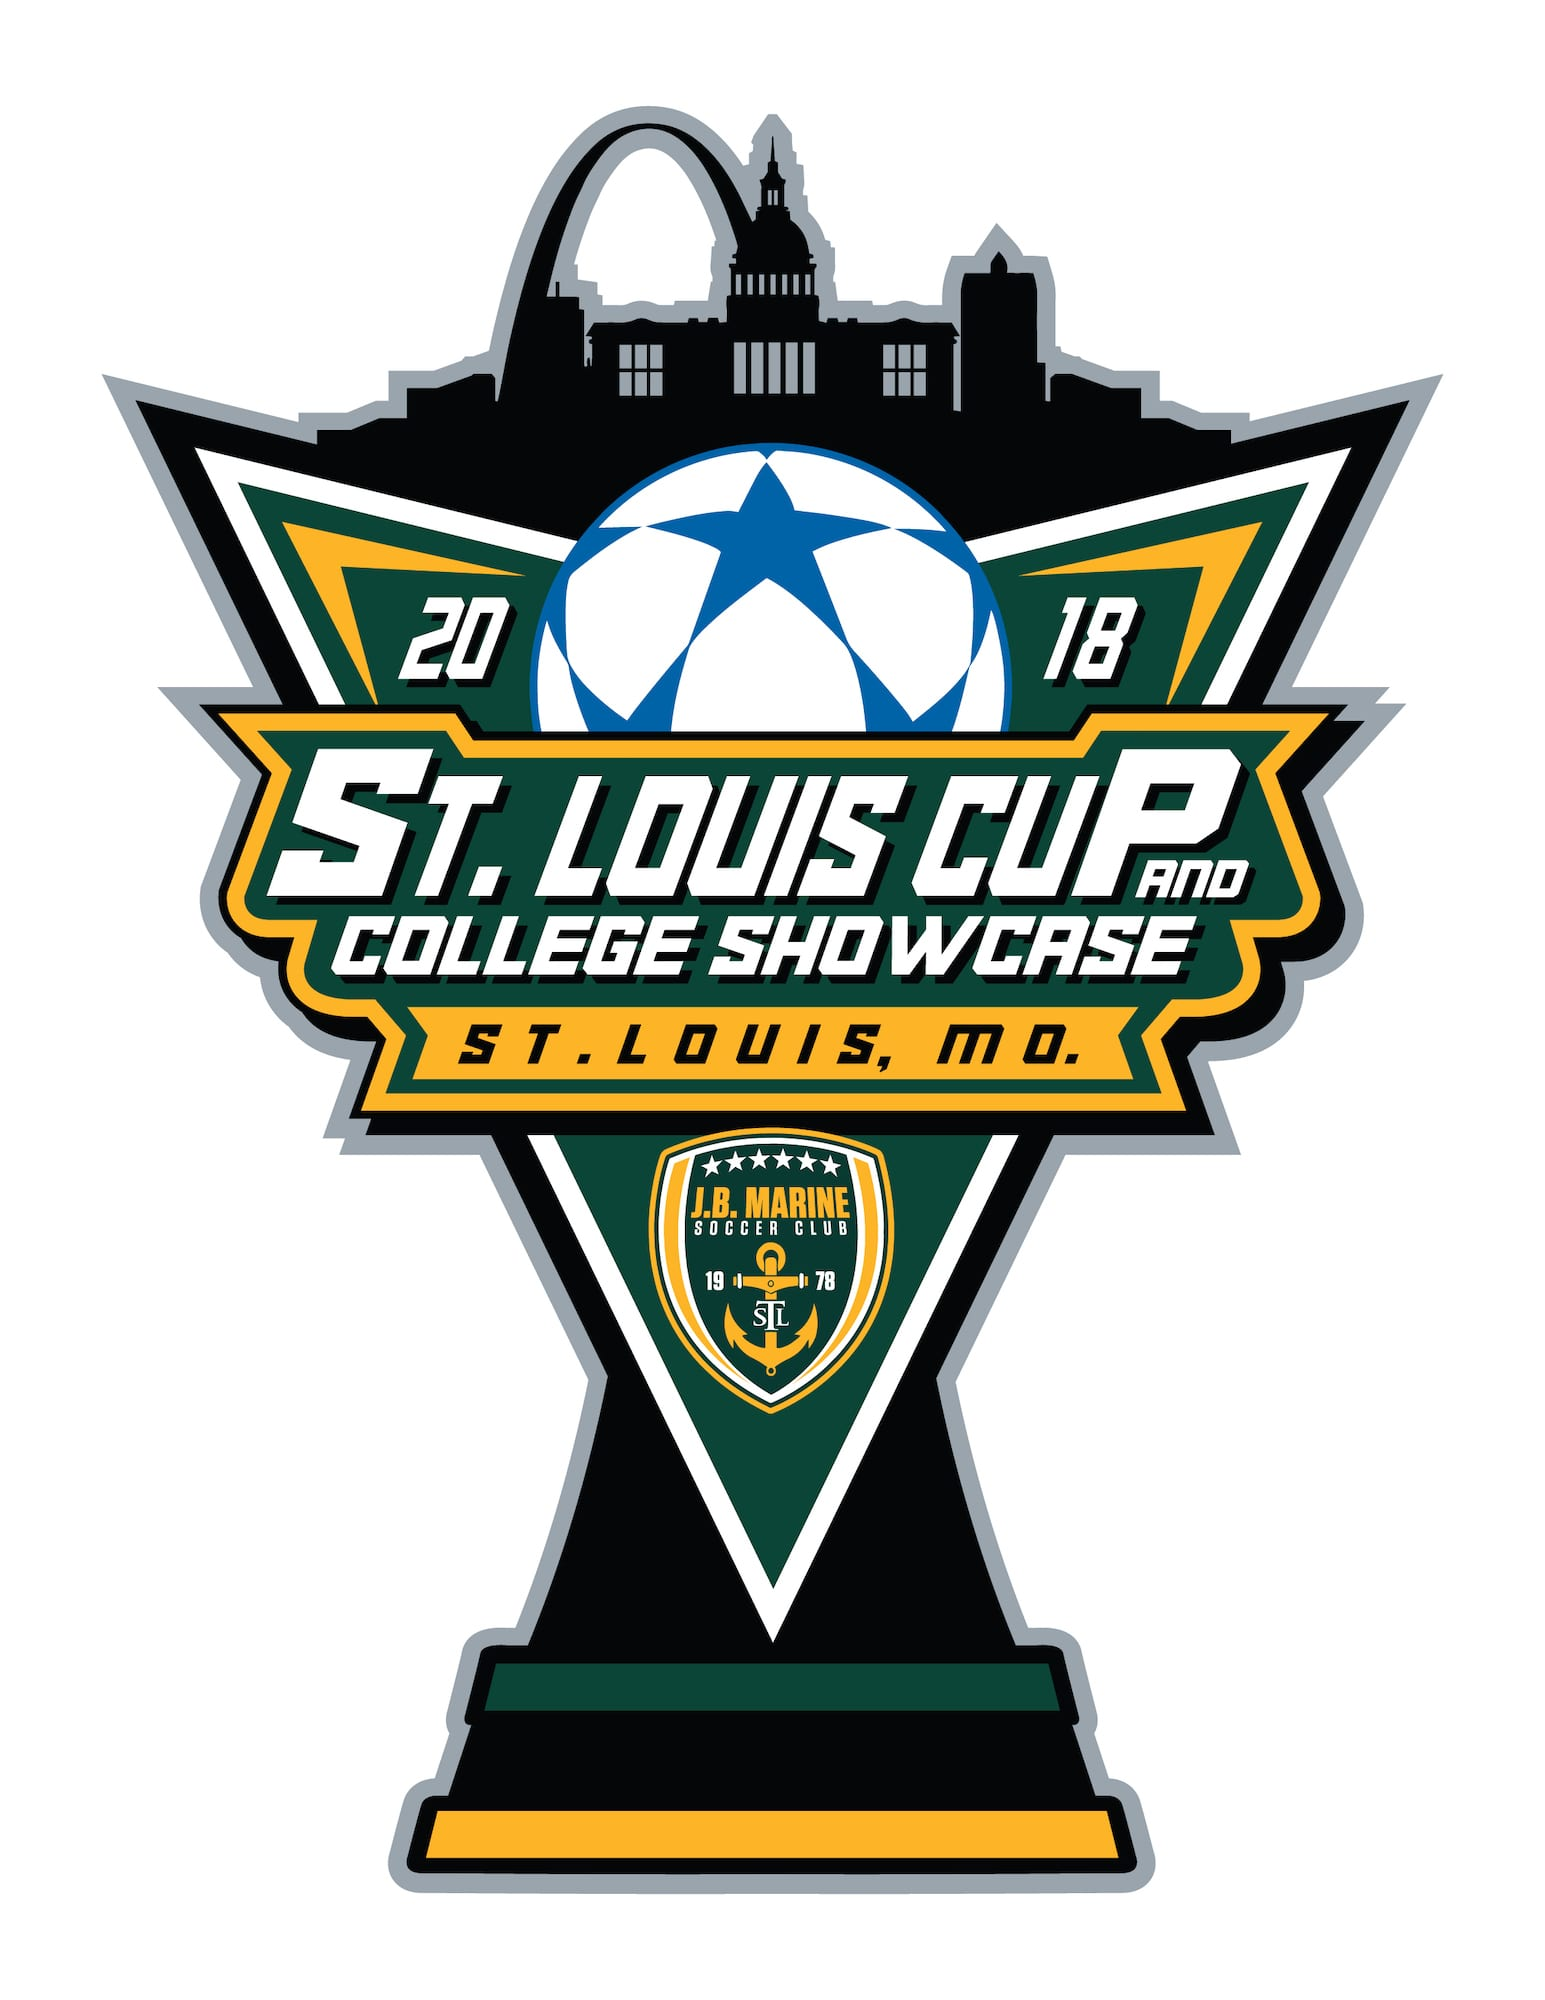 J.B. Marine St. Louis Cup & College Showcase